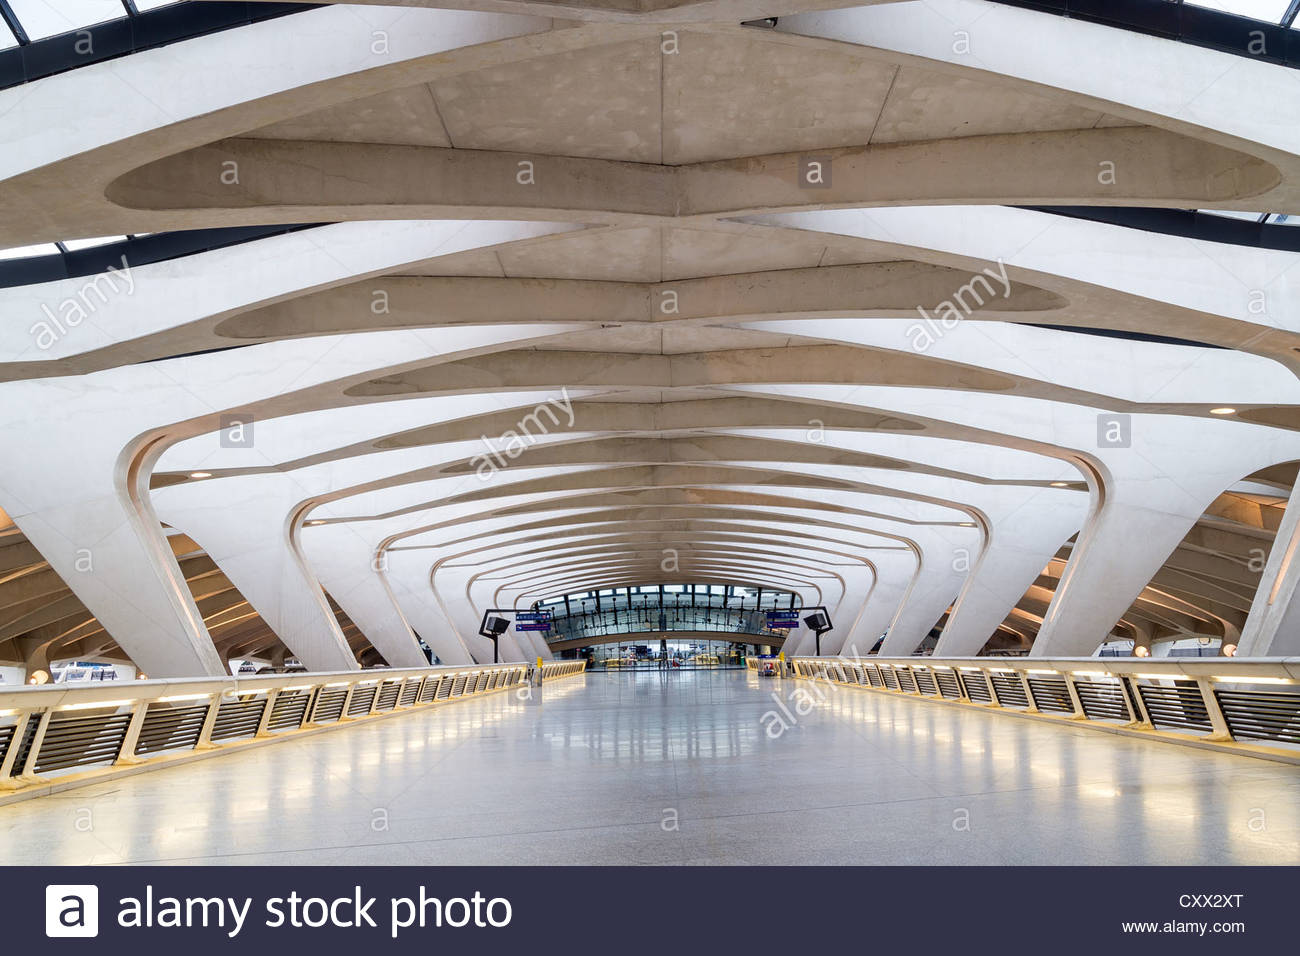 lyon-saint-exupery-airport-train-station-tgv-france-CXX2XT.jpg